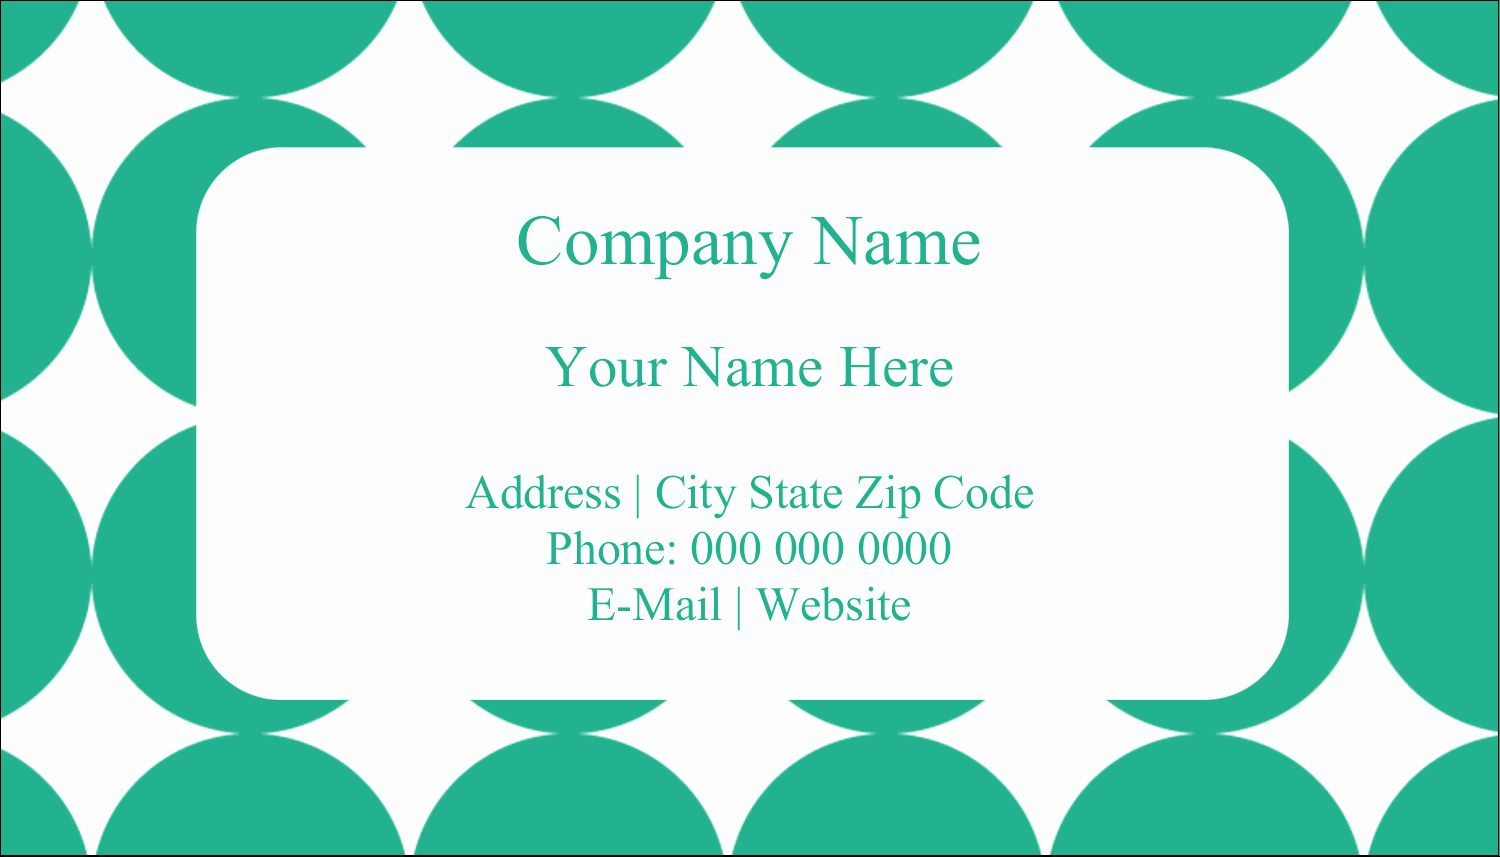 Avery 8875 Business Cards Templates Awesome Avery Clean Edge Rounded Corner Business Cards 2 X 3 1 Business Card Template Card Template Business Card Software